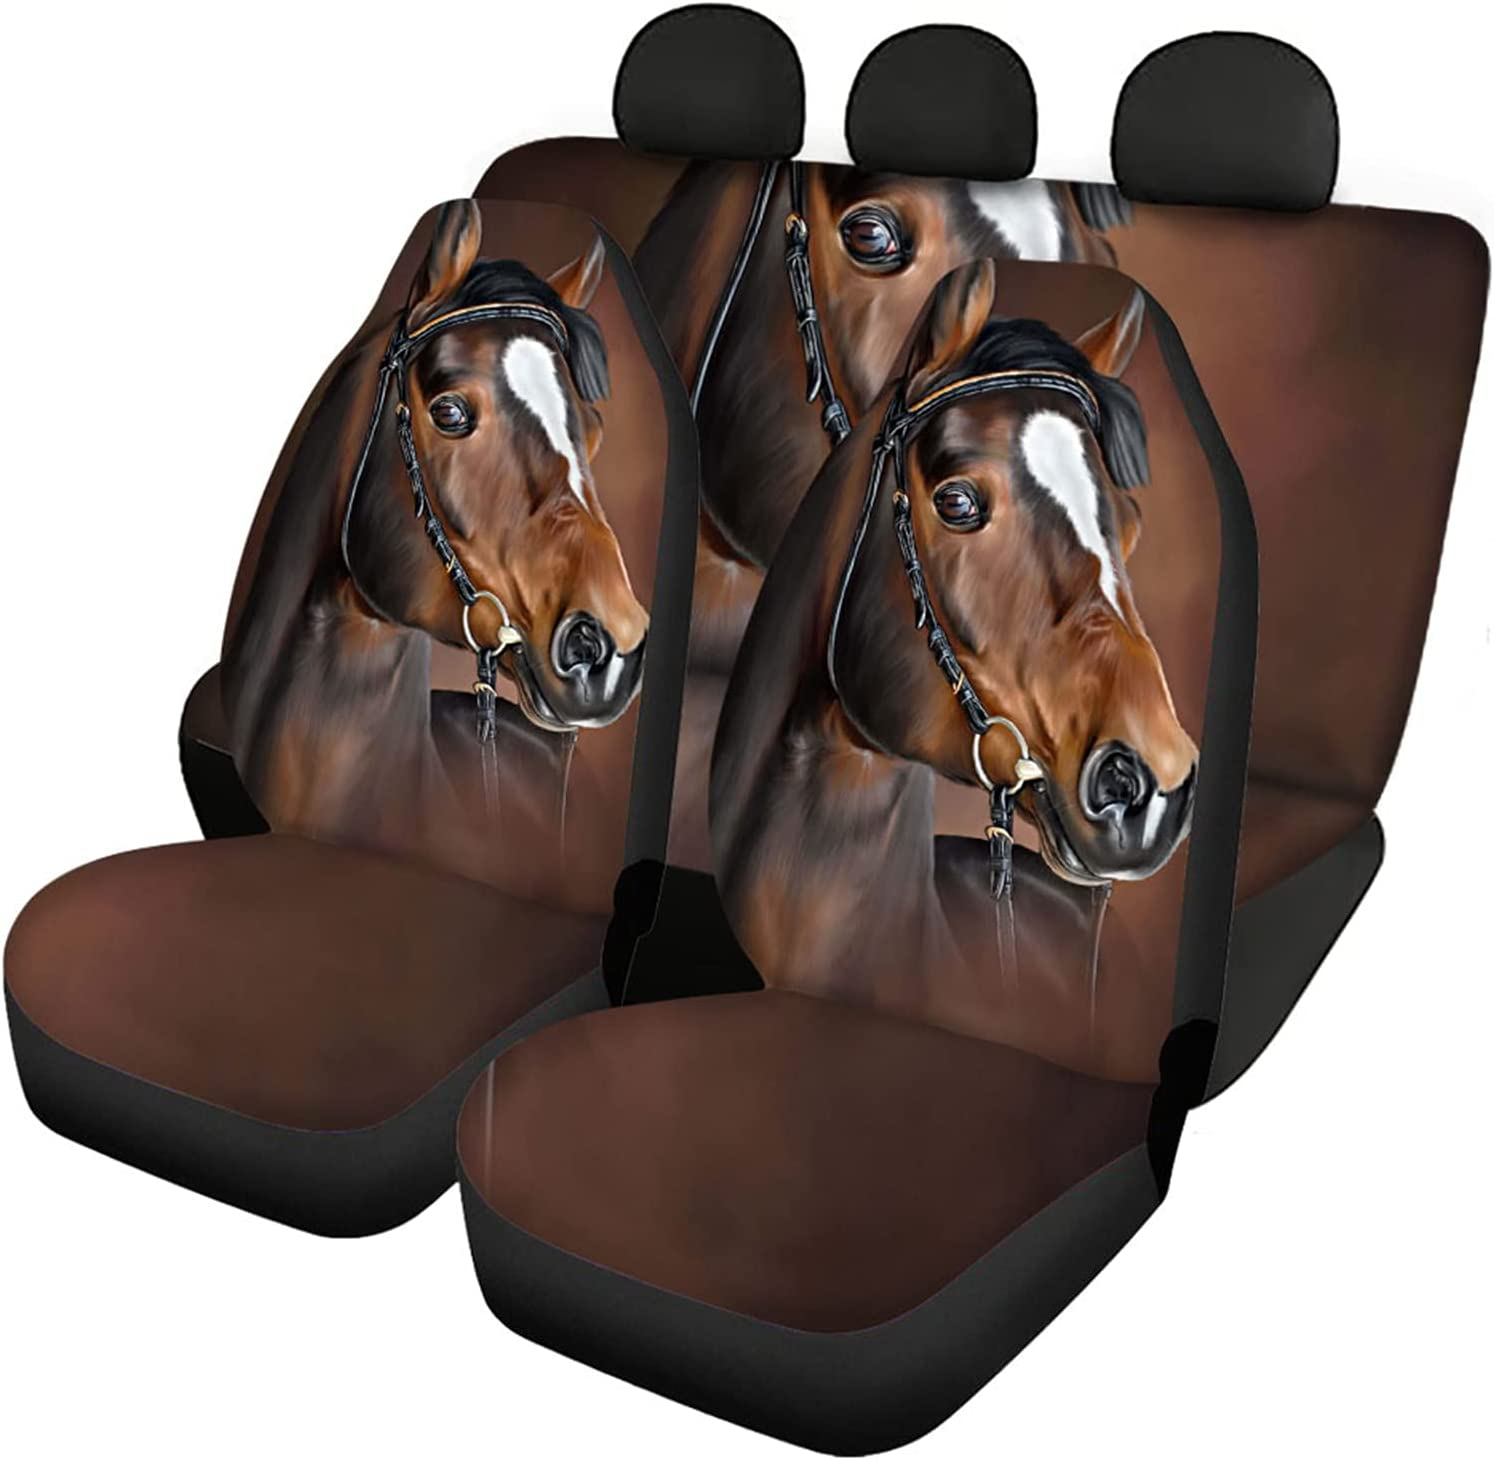 Belidome Horse Car Seat Covers Set Auto of Universal Front All stores Clearance SALE! Limited time! are sold Bac 4